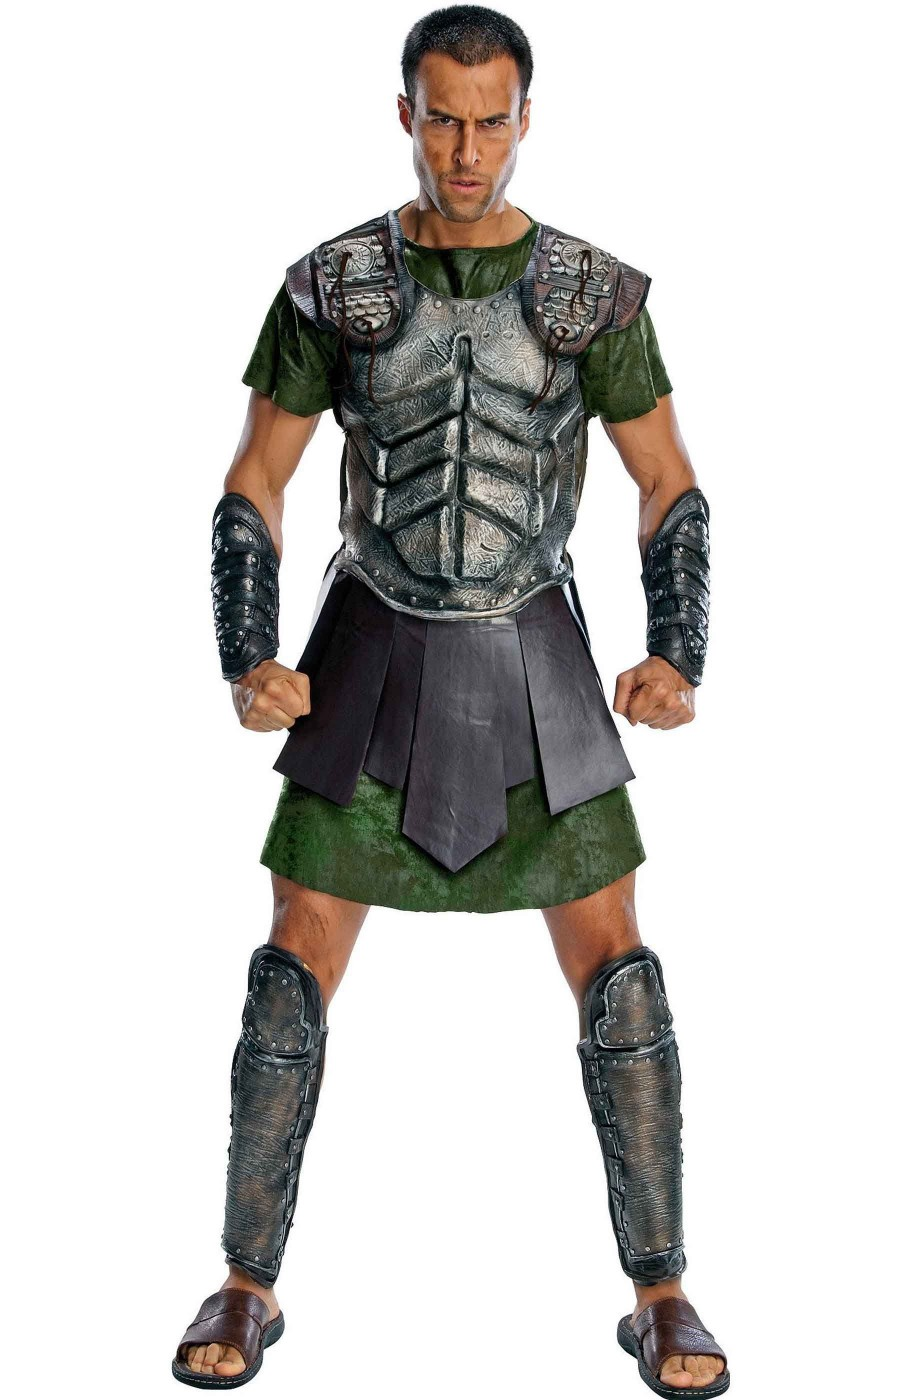 Costume Adulto Perseo De Luxe Clash of the Titans